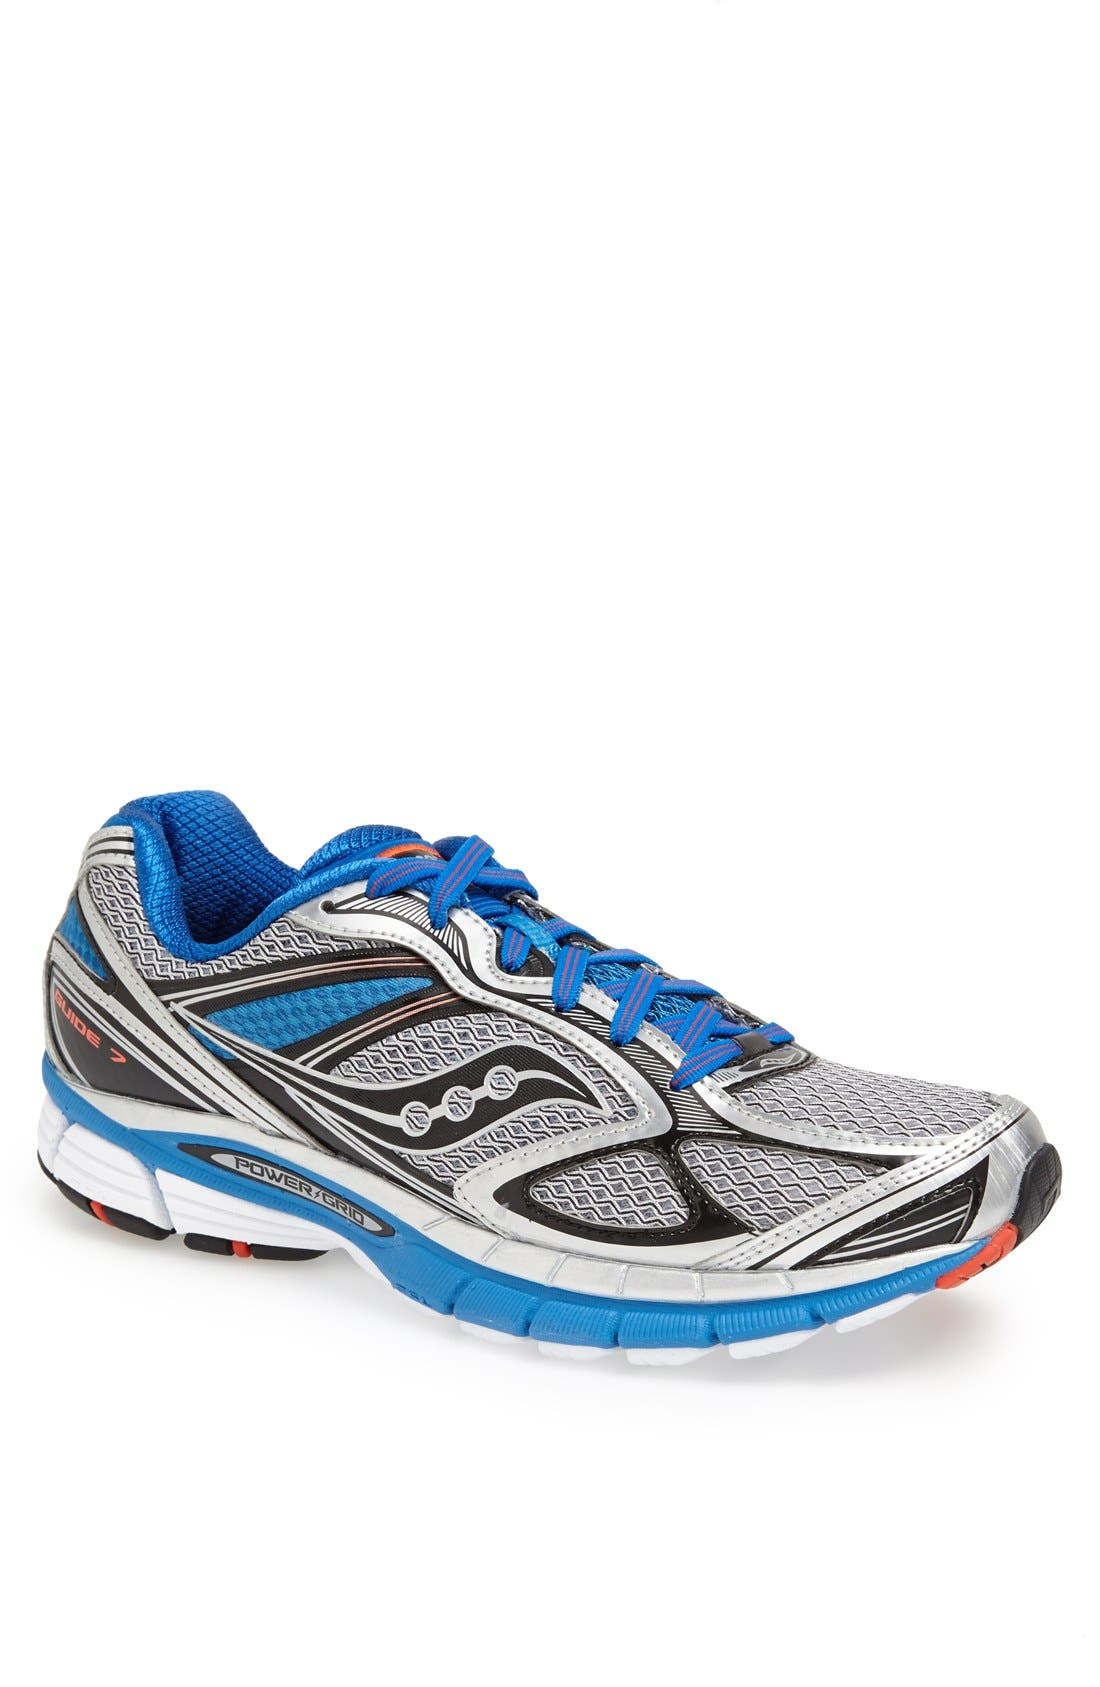 Alternate Image 1 Selected - Saucony 'Guide 7' Running Shoe (Men)